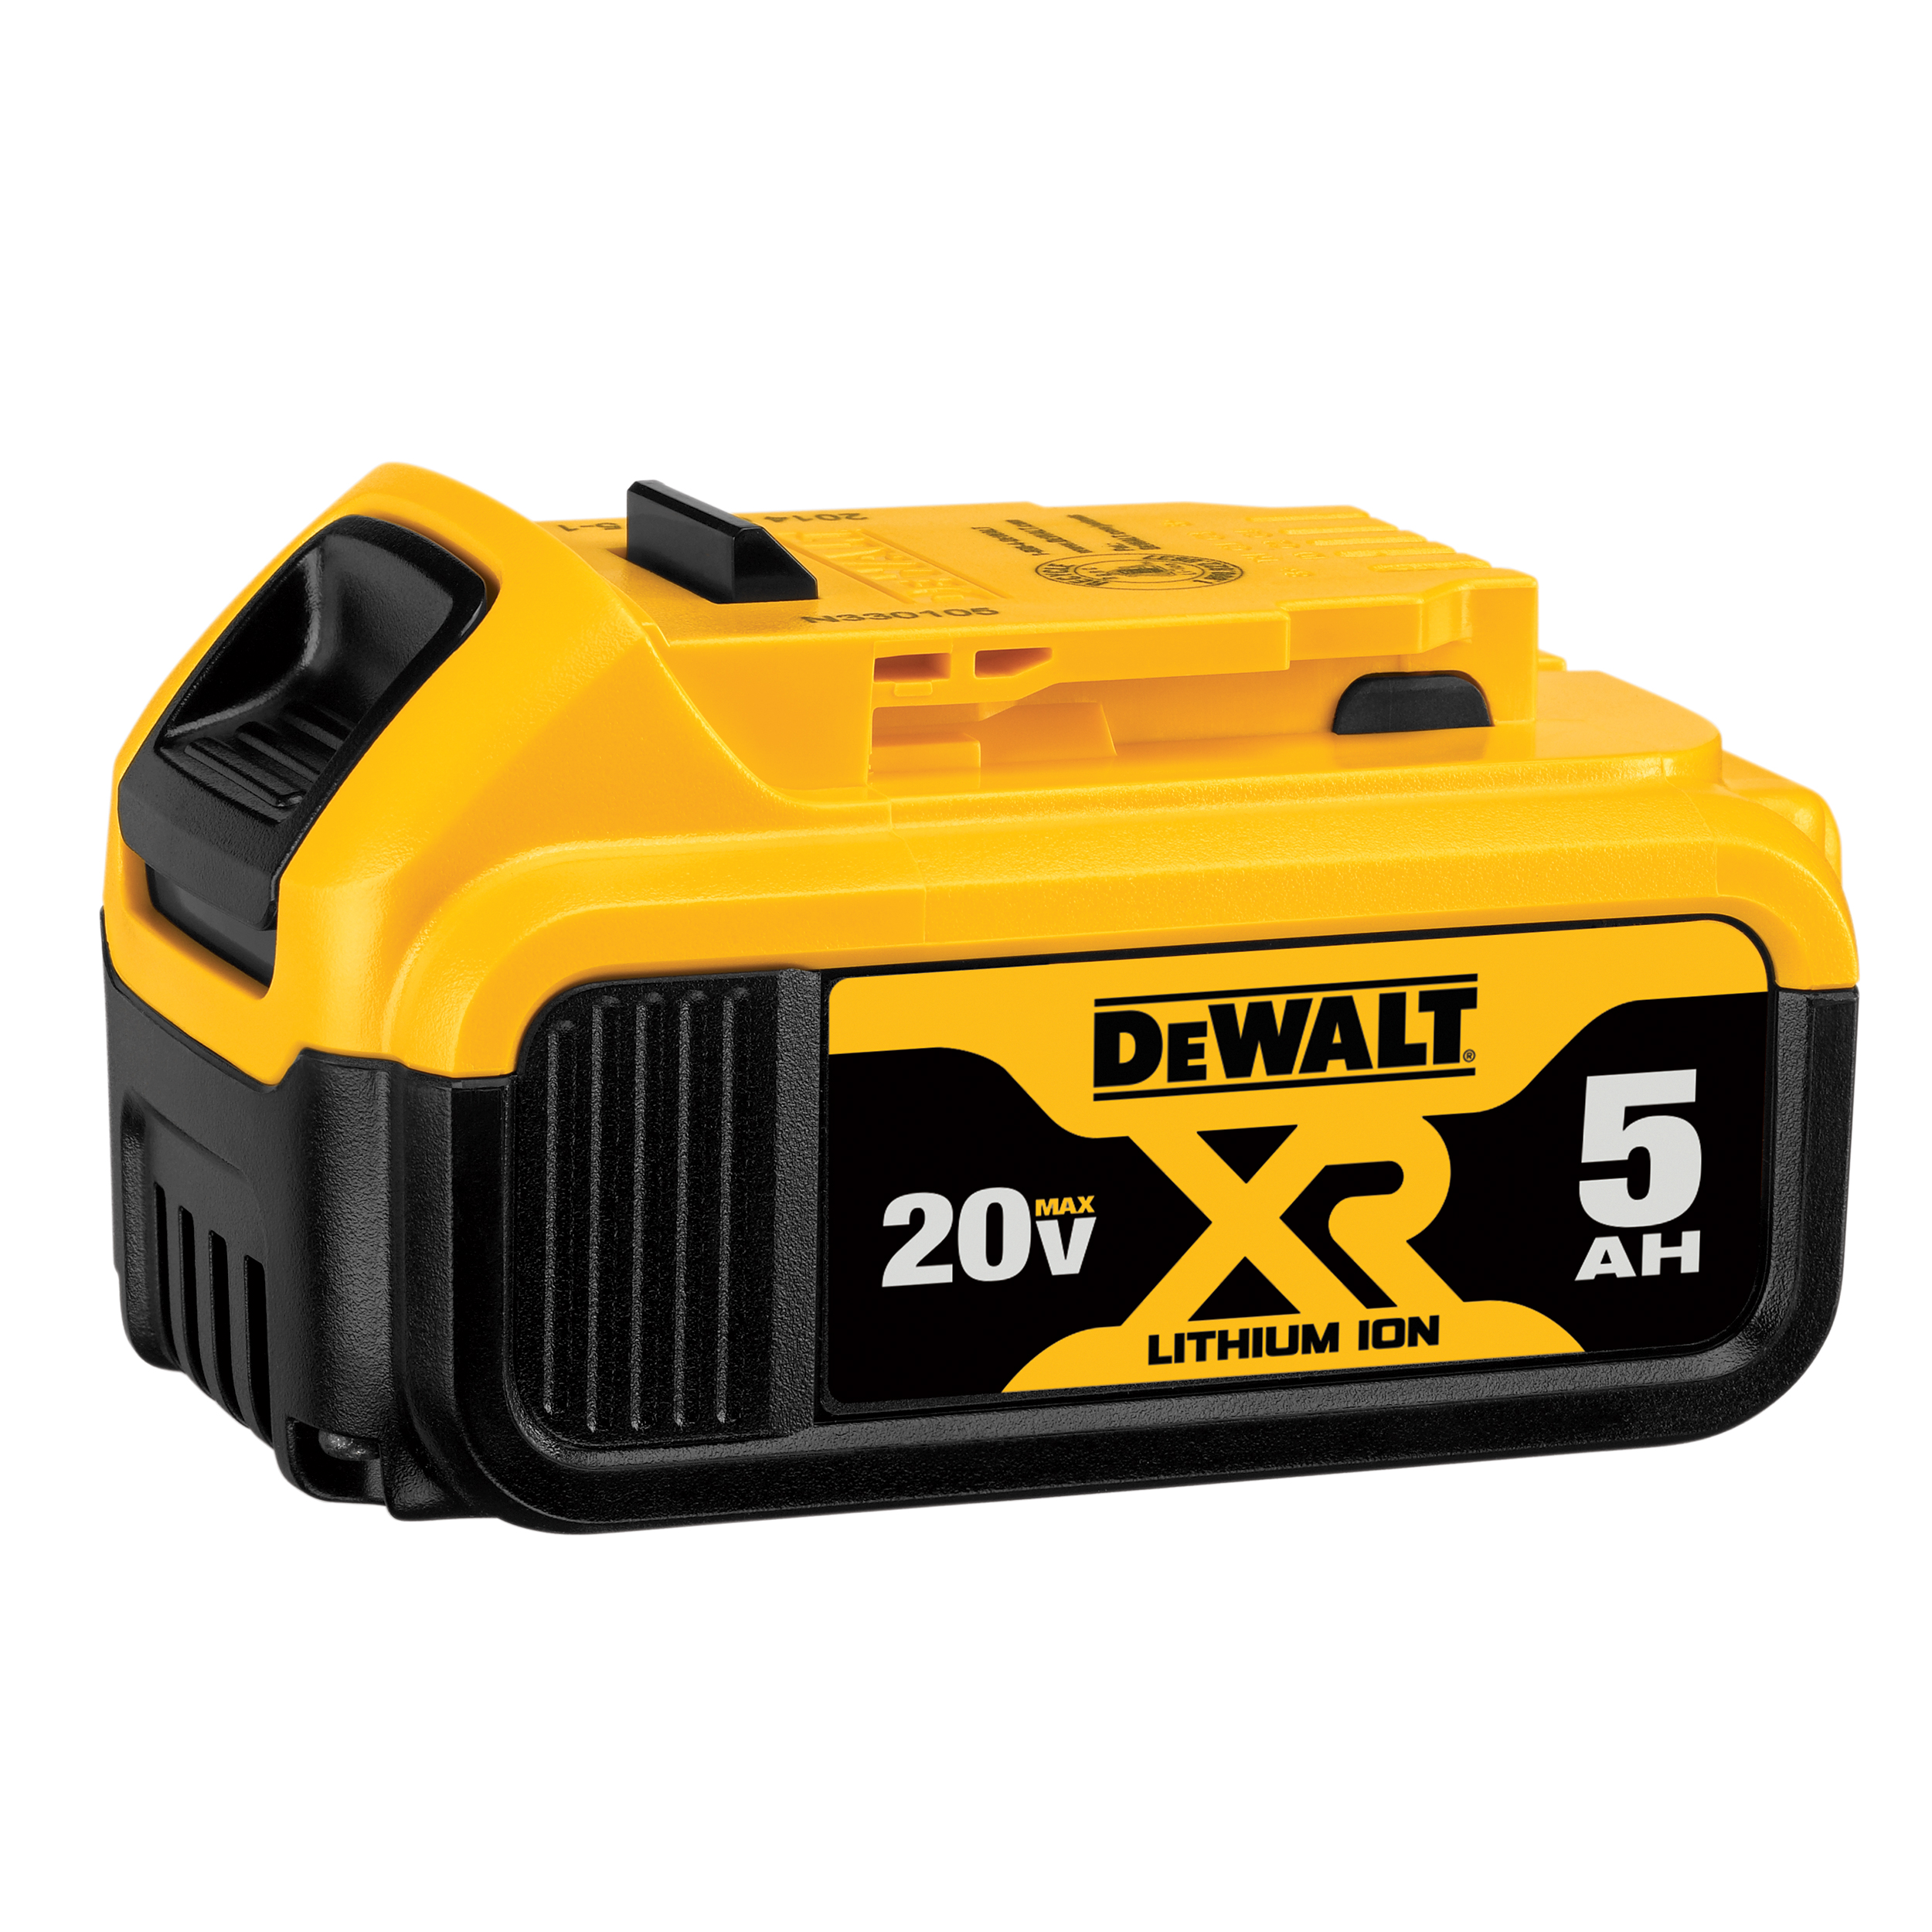 20V MAX XR 5.0AH Lithium Ion Battery Pack